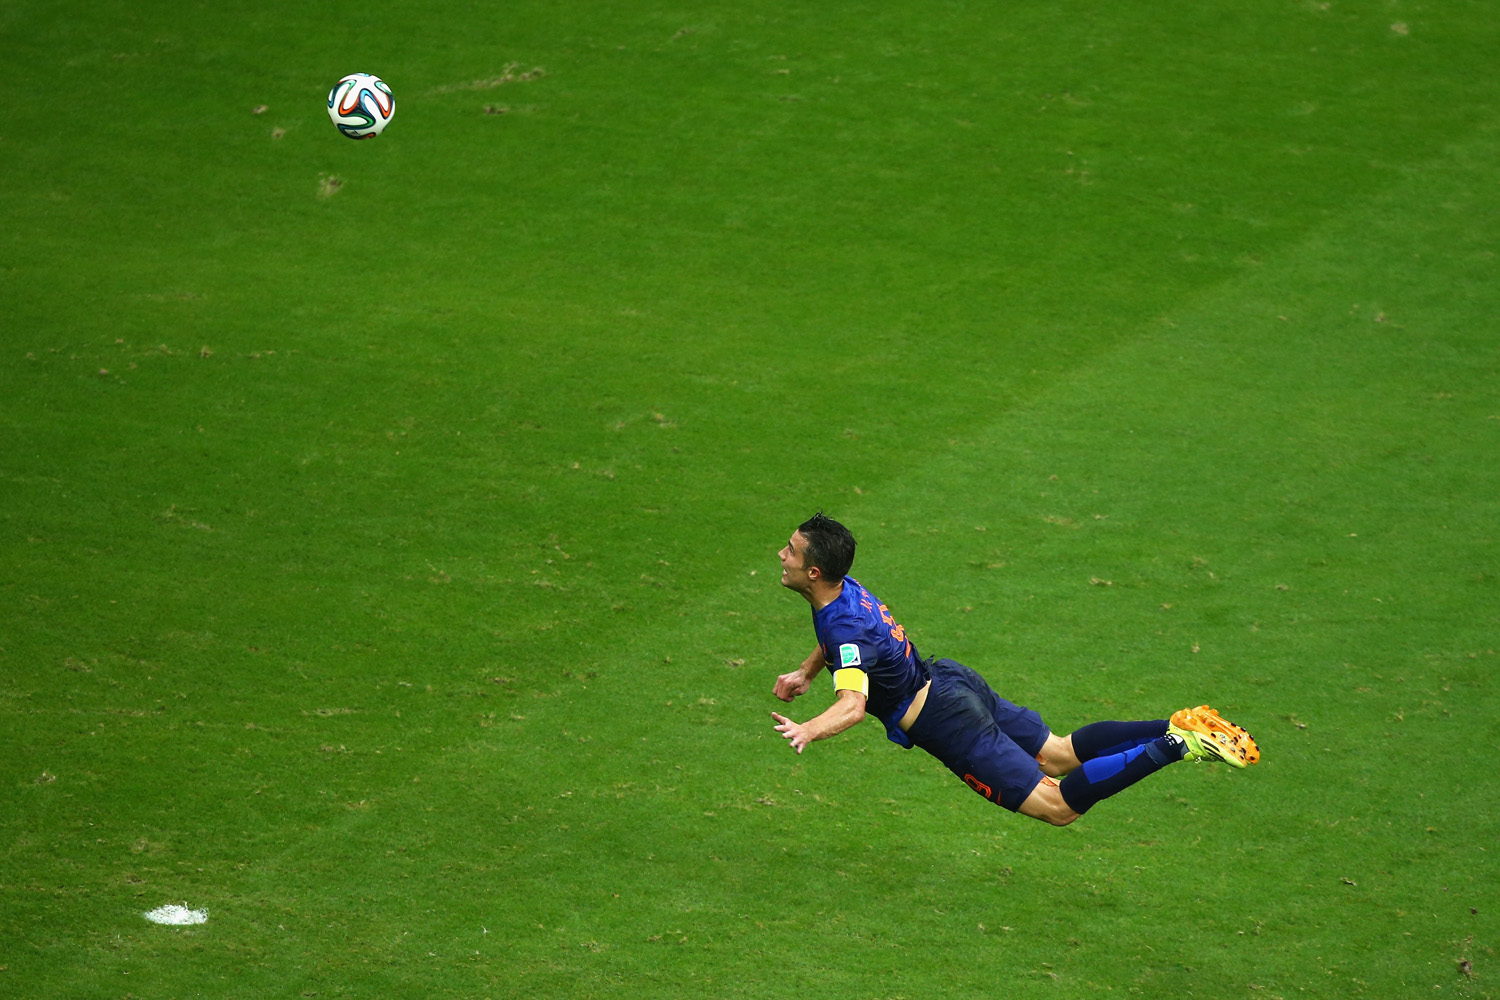 Robin van Persie of the Netherlands scores his team's first goal with a diving header in the first half during the 2014 FIFA World Cup Brazil Group B match between Spain and Netherlands at Arena Fonte Nova in Salvador, Brazil on June 13, 2014.